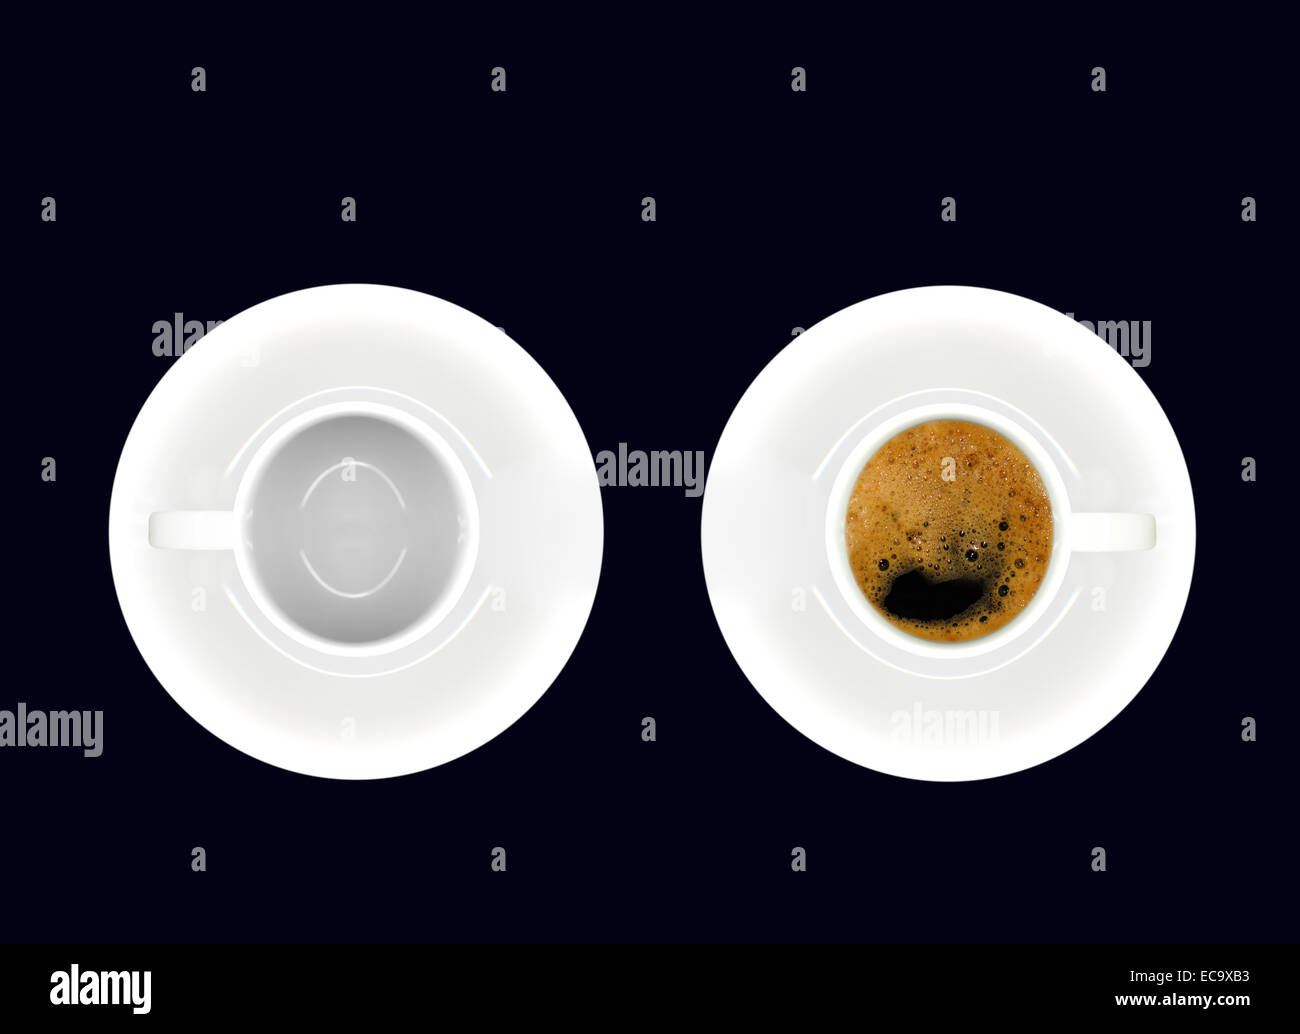 Pair of white porcelain cups with saucers, one containing coffee and one empty, on black background. - Stock Image